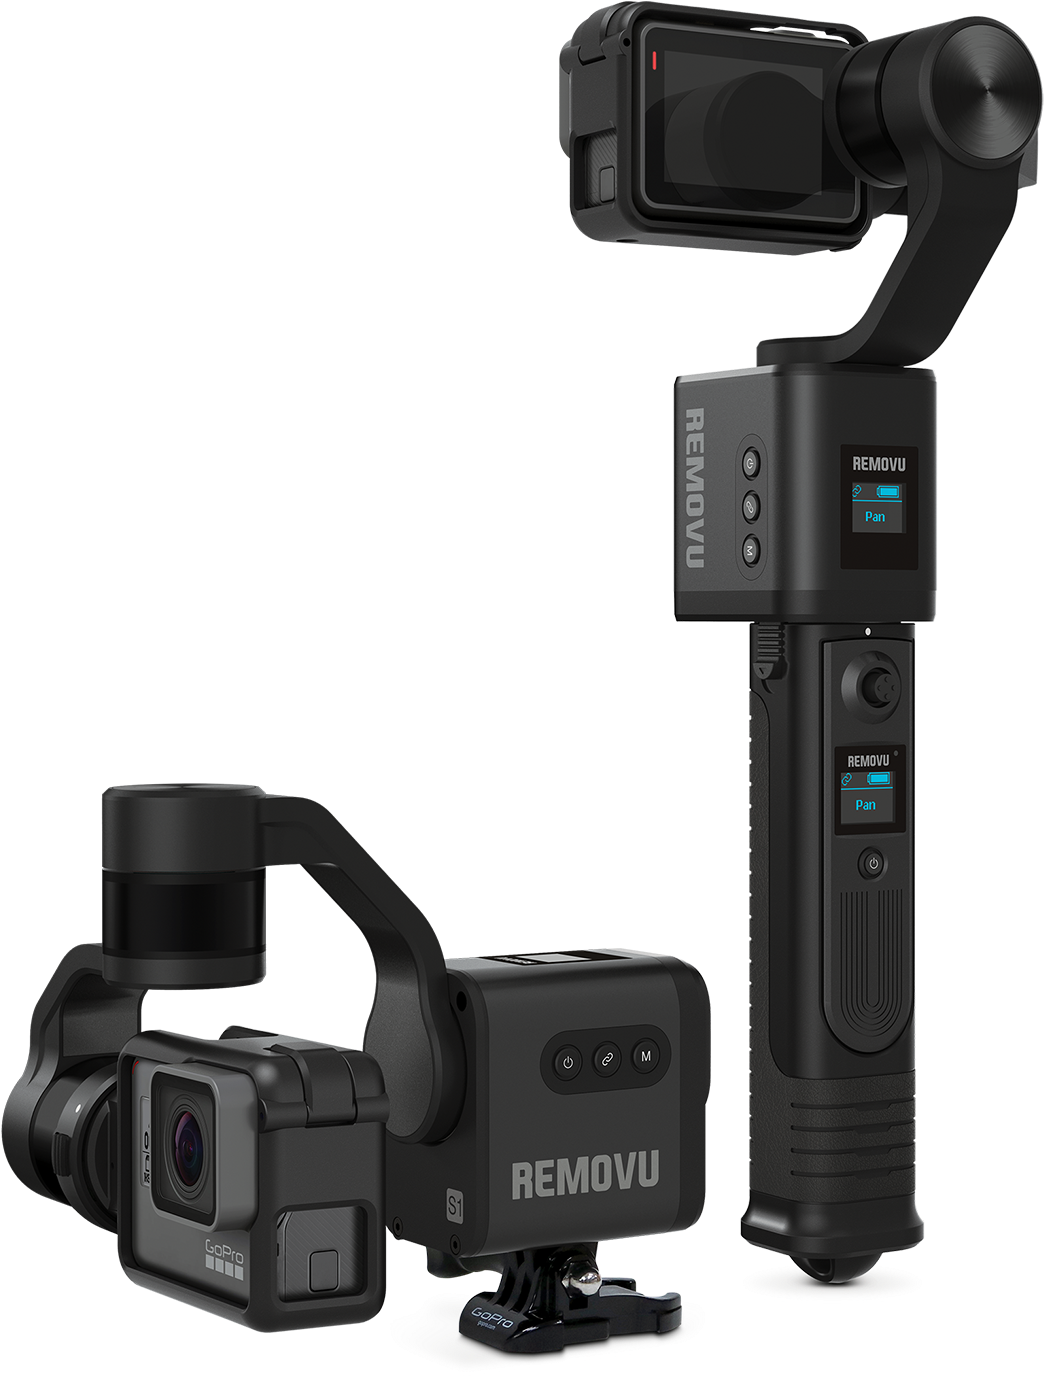 Removu S1 Is A 3-axis Gimbal For Gopro Camera - Gopro Hero 6 Gimbal (1600x1600), Png Download